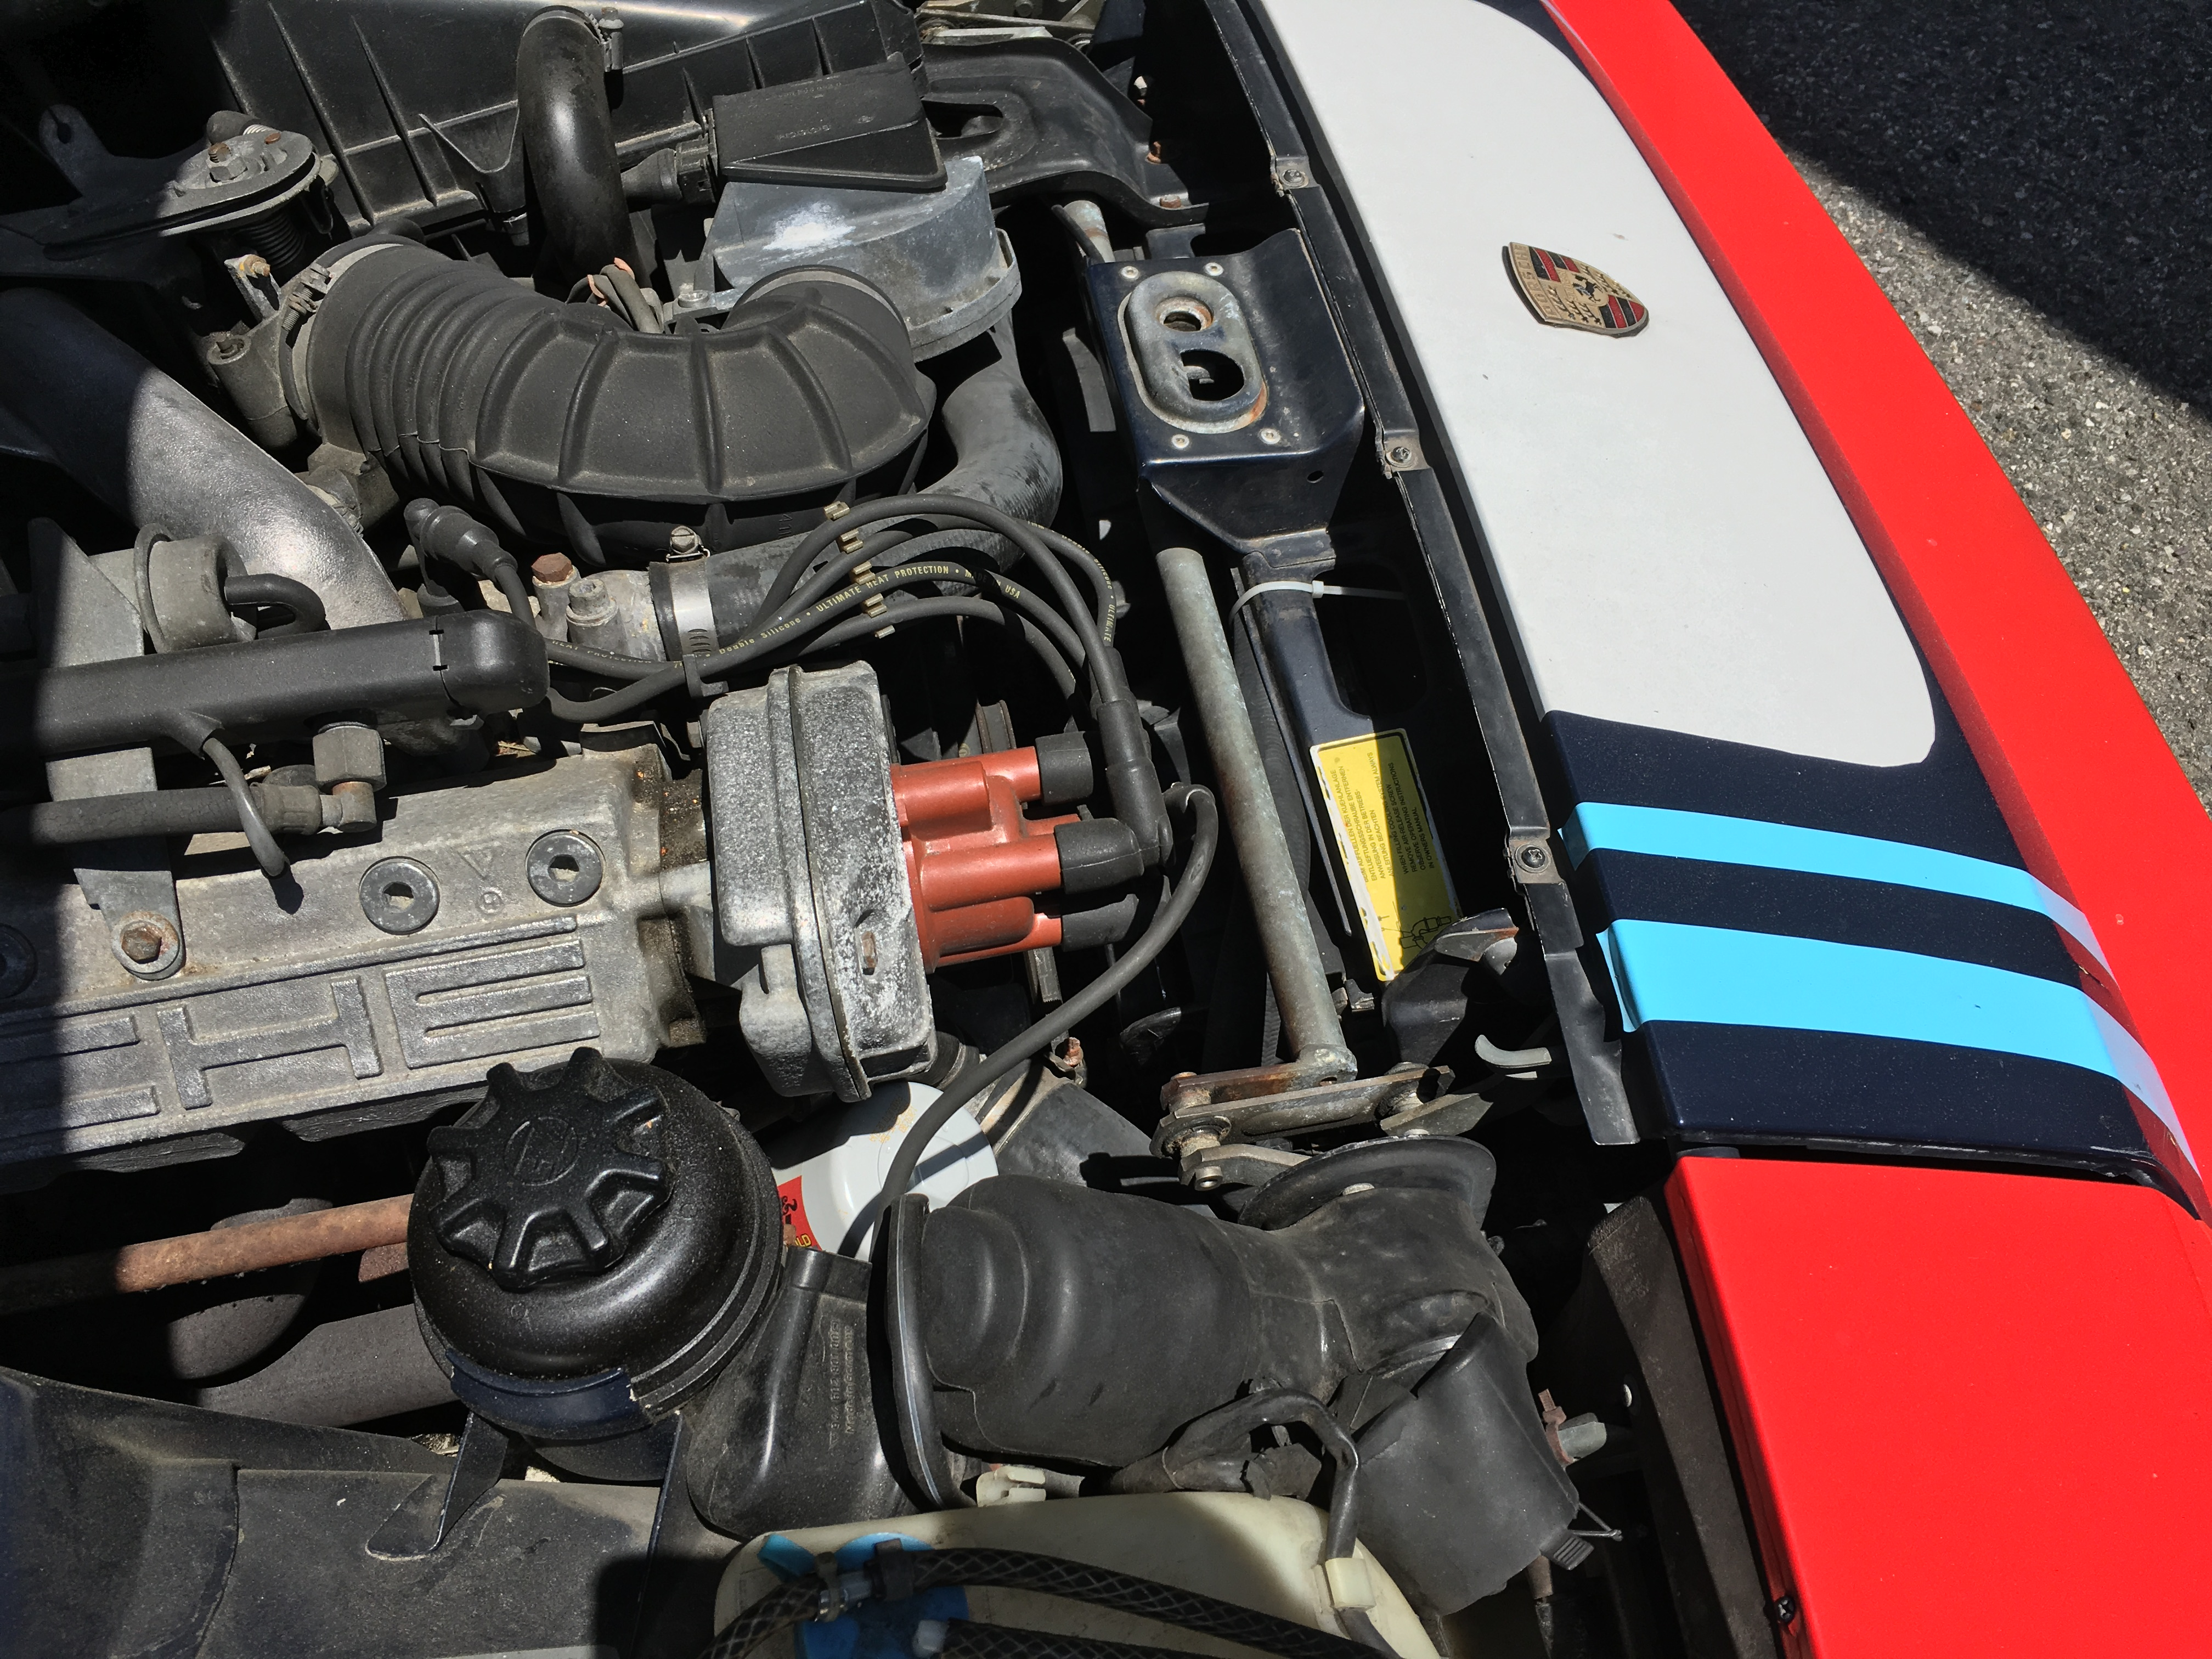 86 porsche 944 engine bay